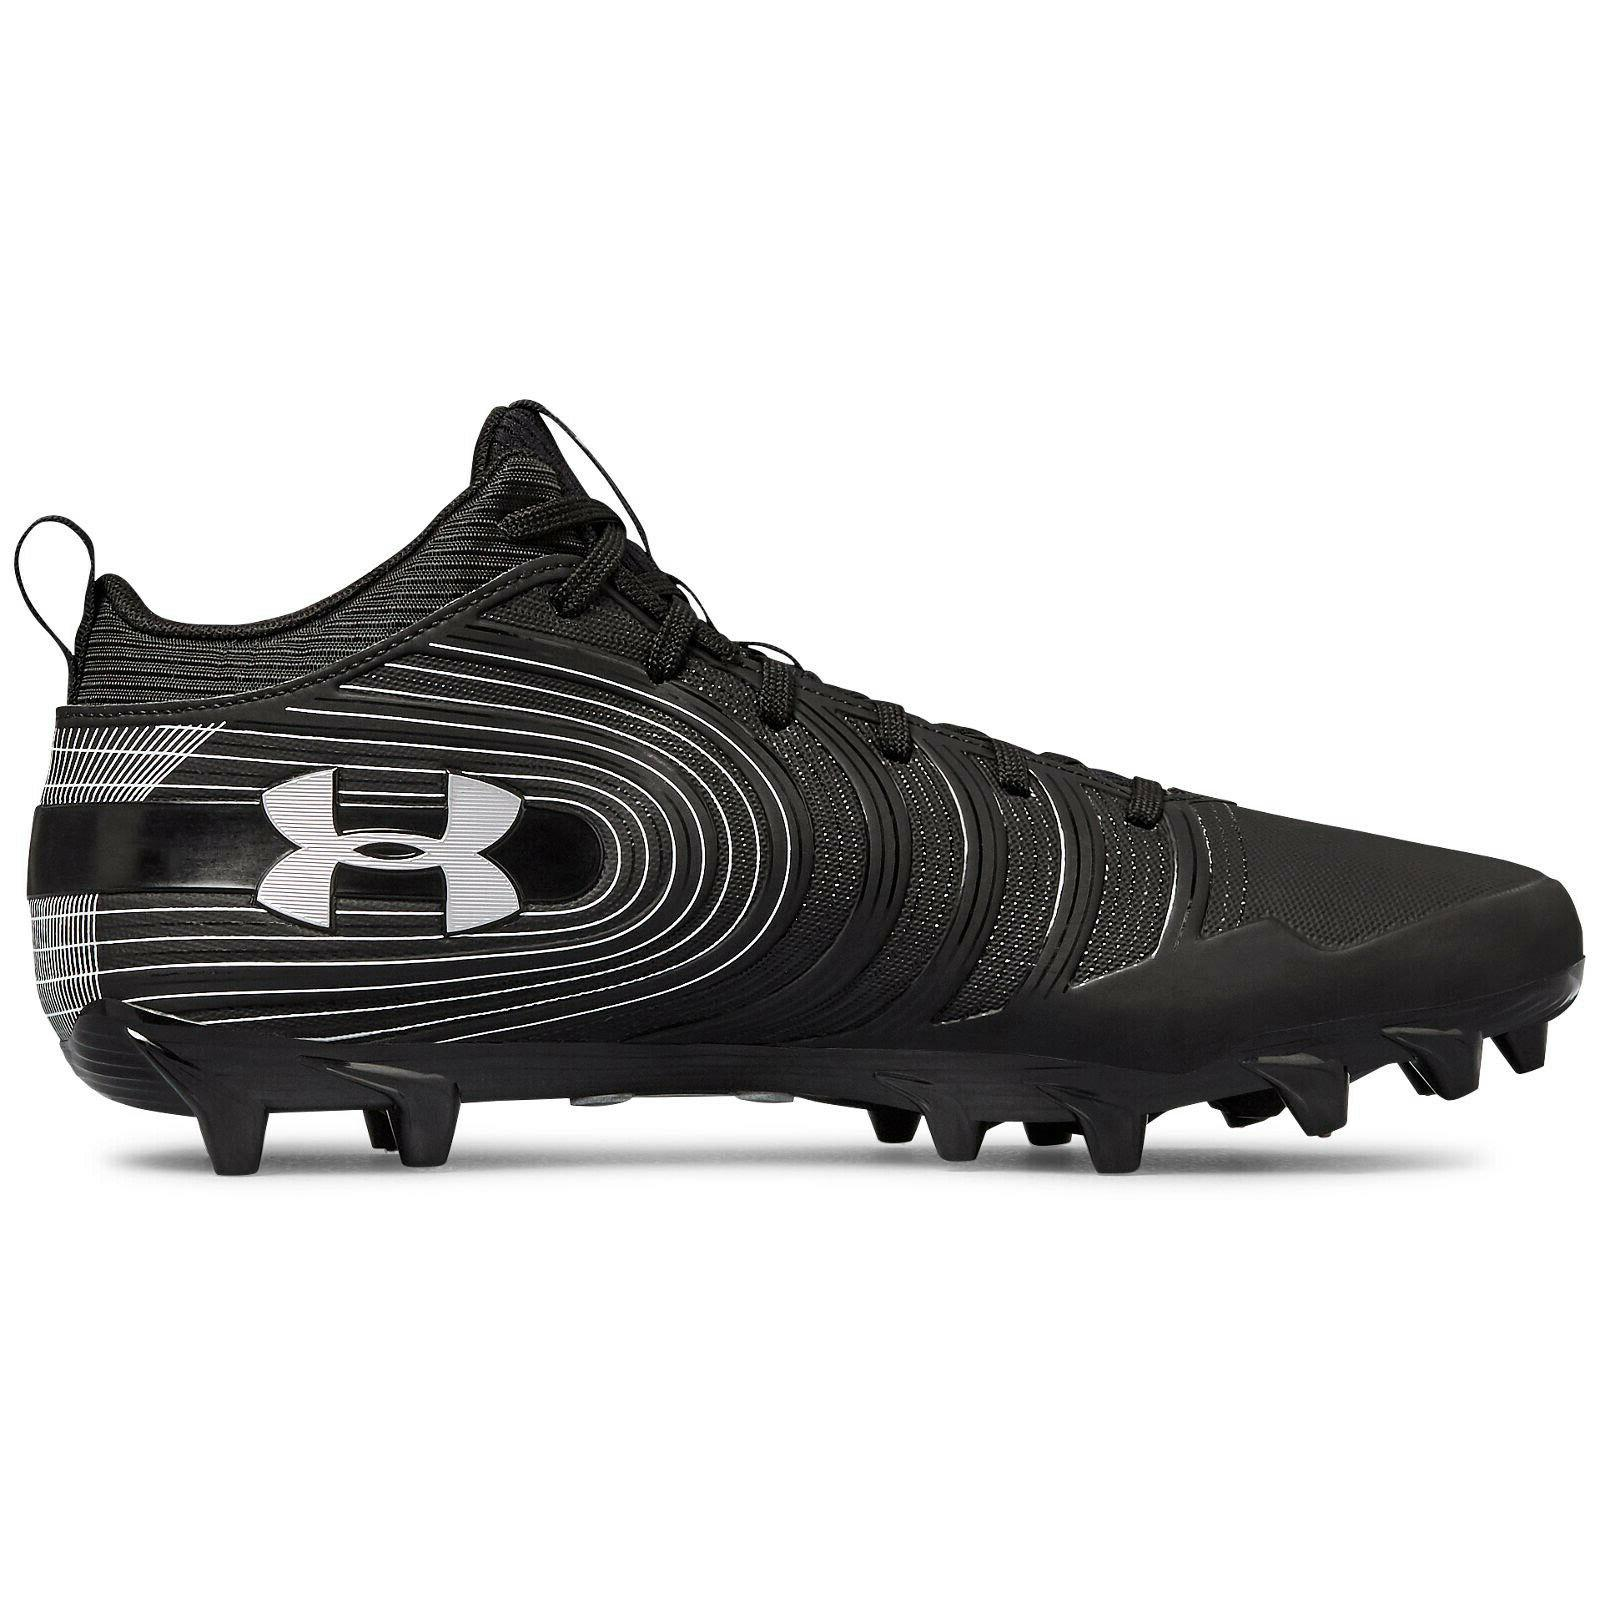 UNDER ARMOUR MID Cleats Silver